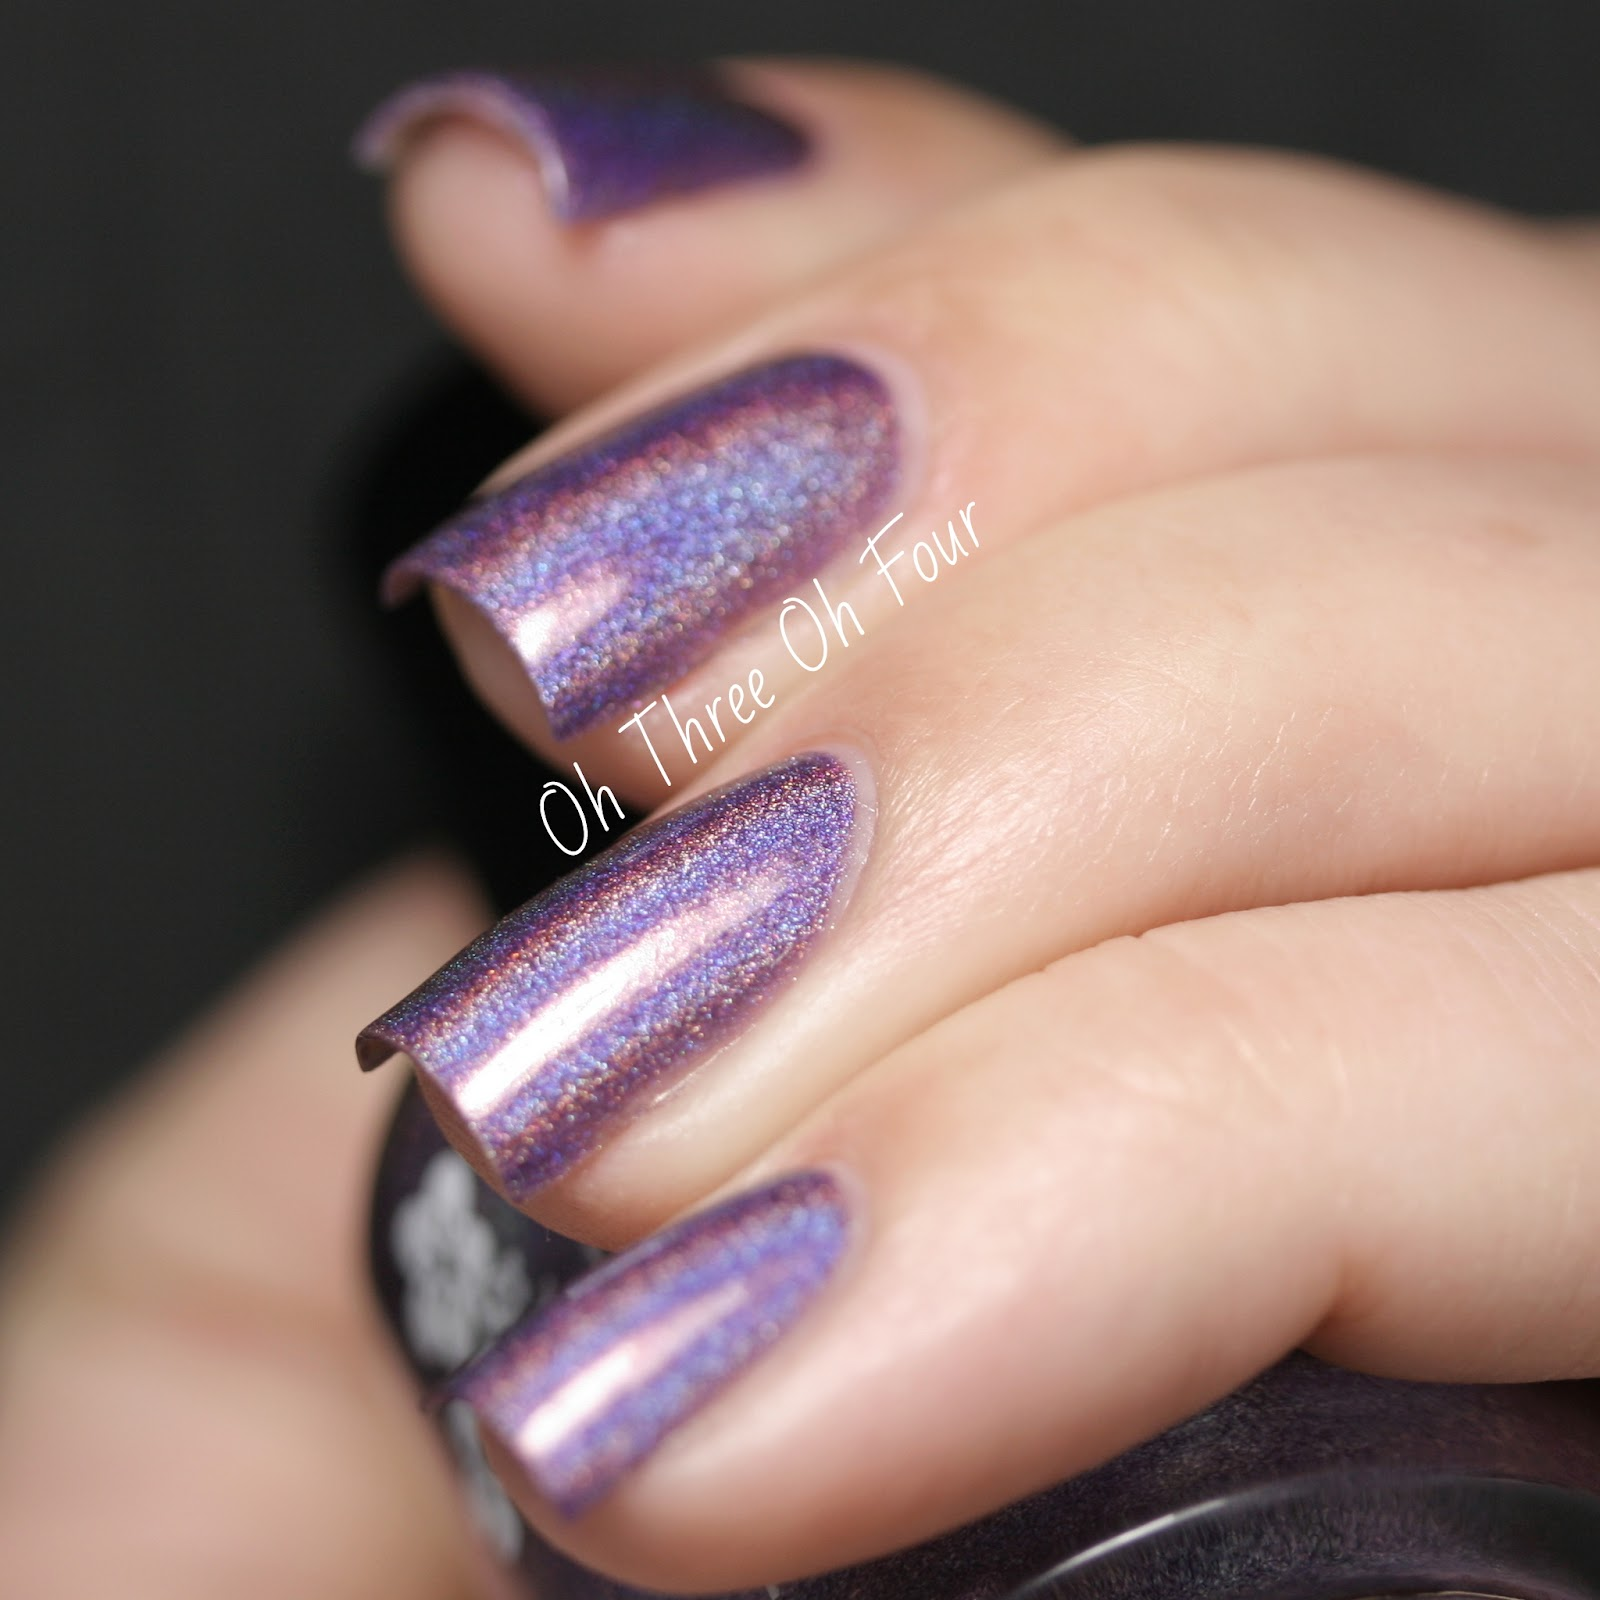 KBShimmer Quick and Flirty Swatch